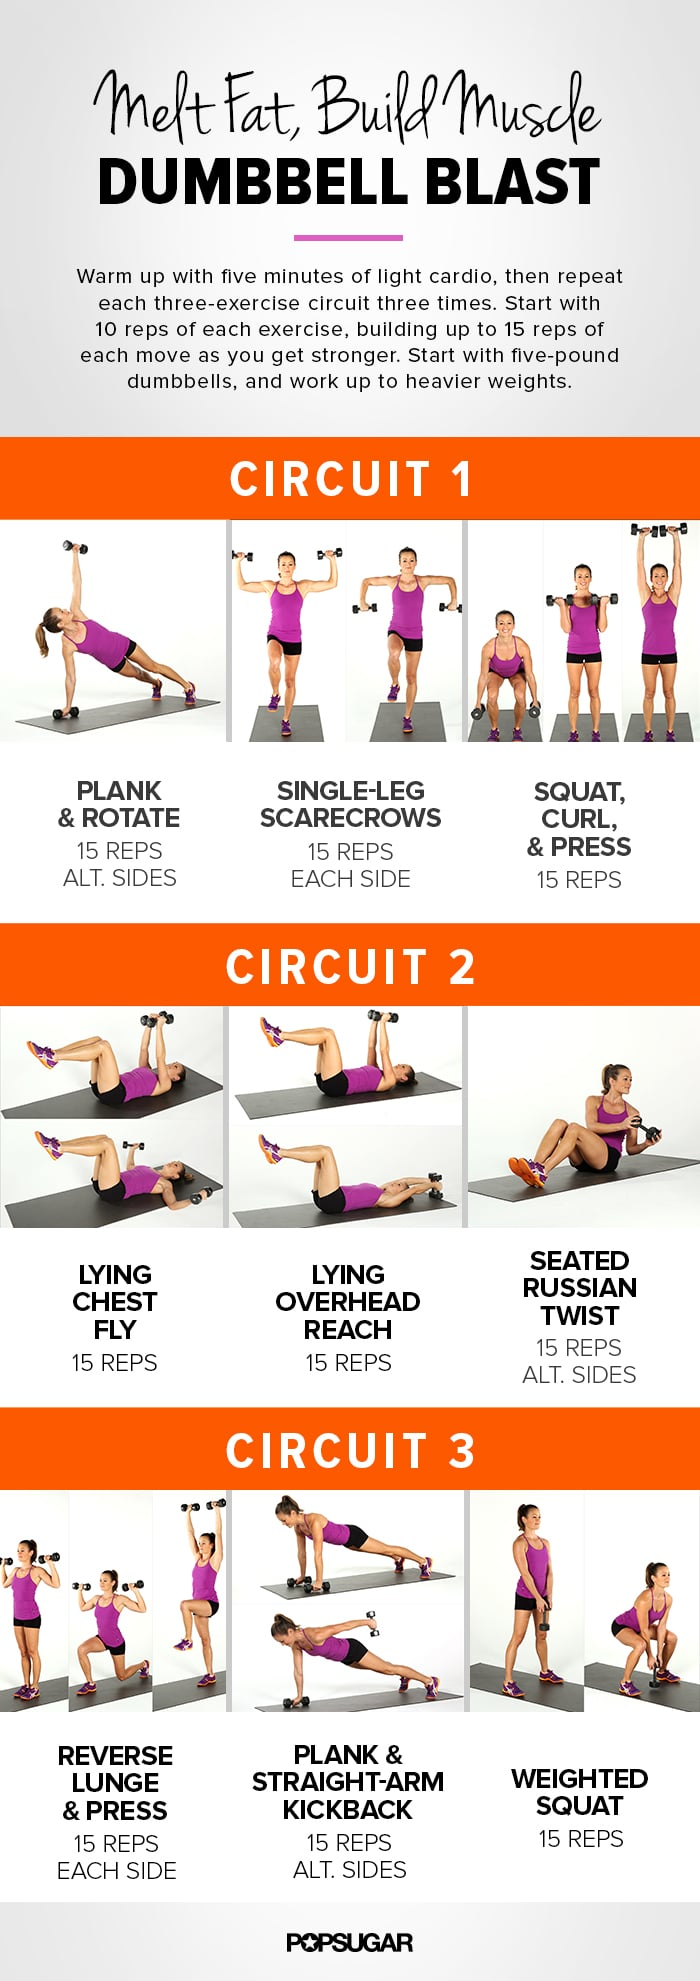 Best Workout Posters Popsugar Fitness Shop fitness for women posters and art prints created by independent artists from around the globe. best workout posters popsugar fitness